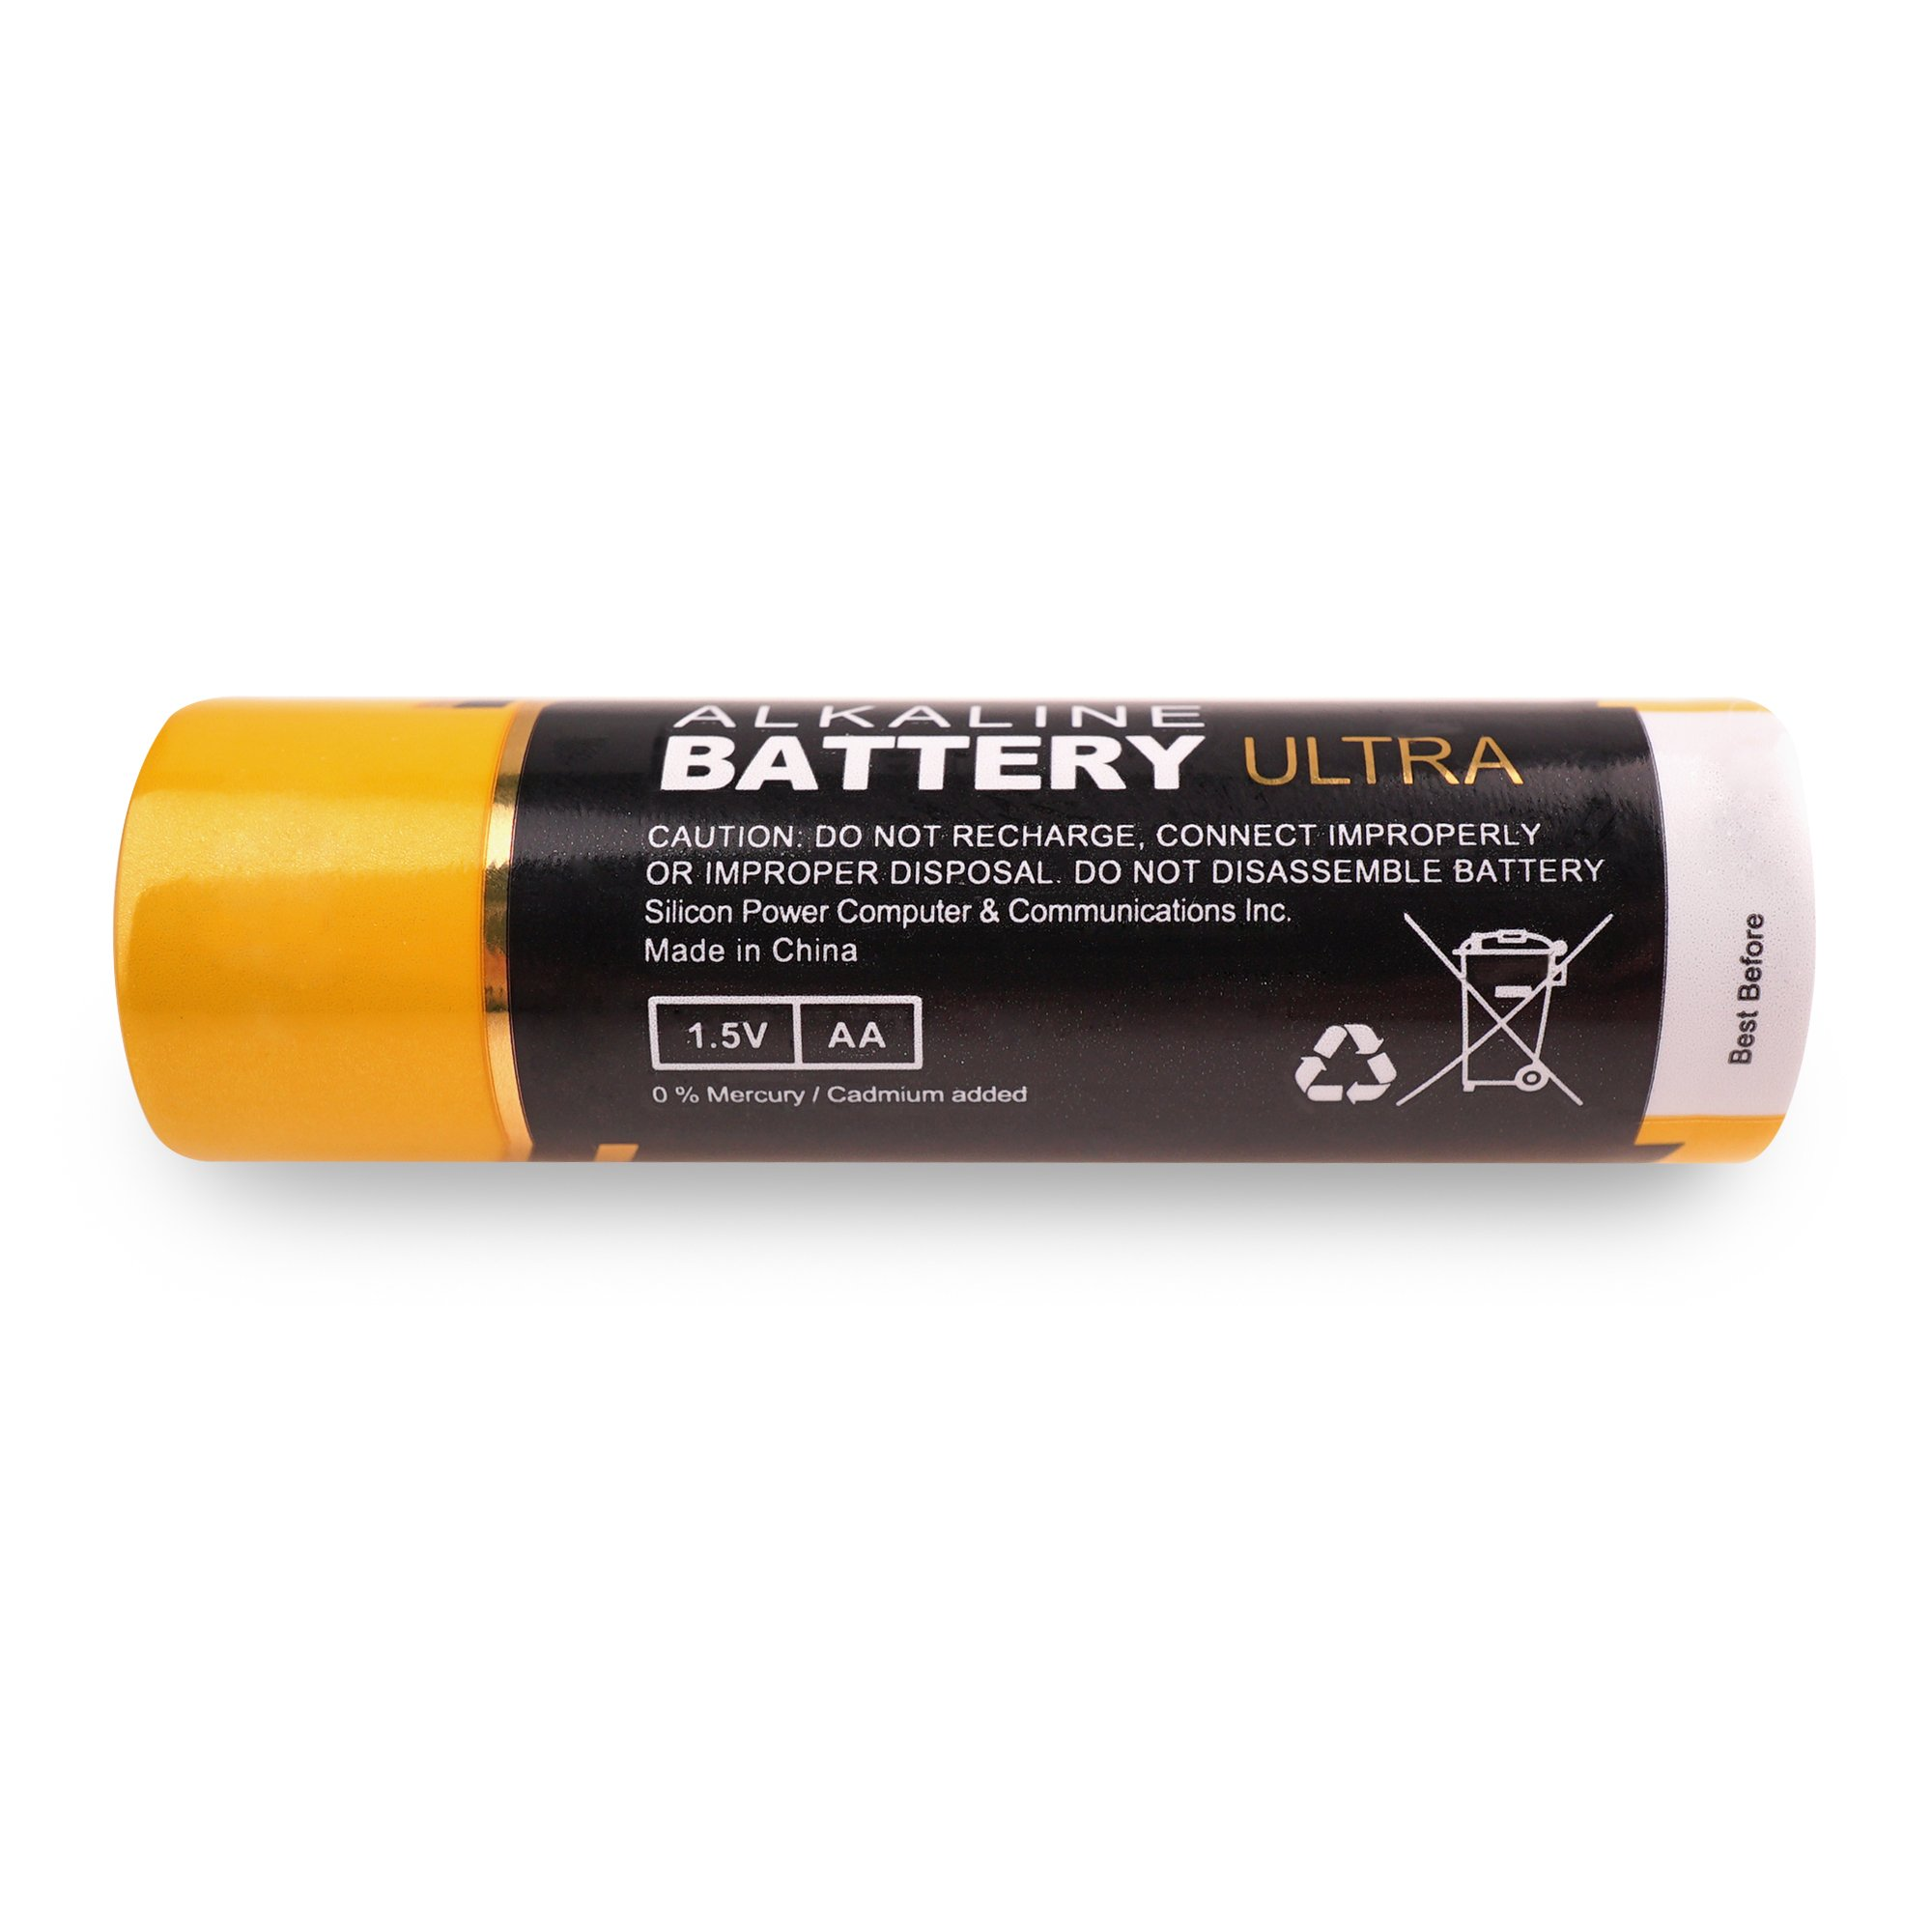 Silicon Power AA 10 Count Value Pack Ultra Alkaline Batteries (SPAL02ABAT10SV1K) by Silicon Power (Image #3)